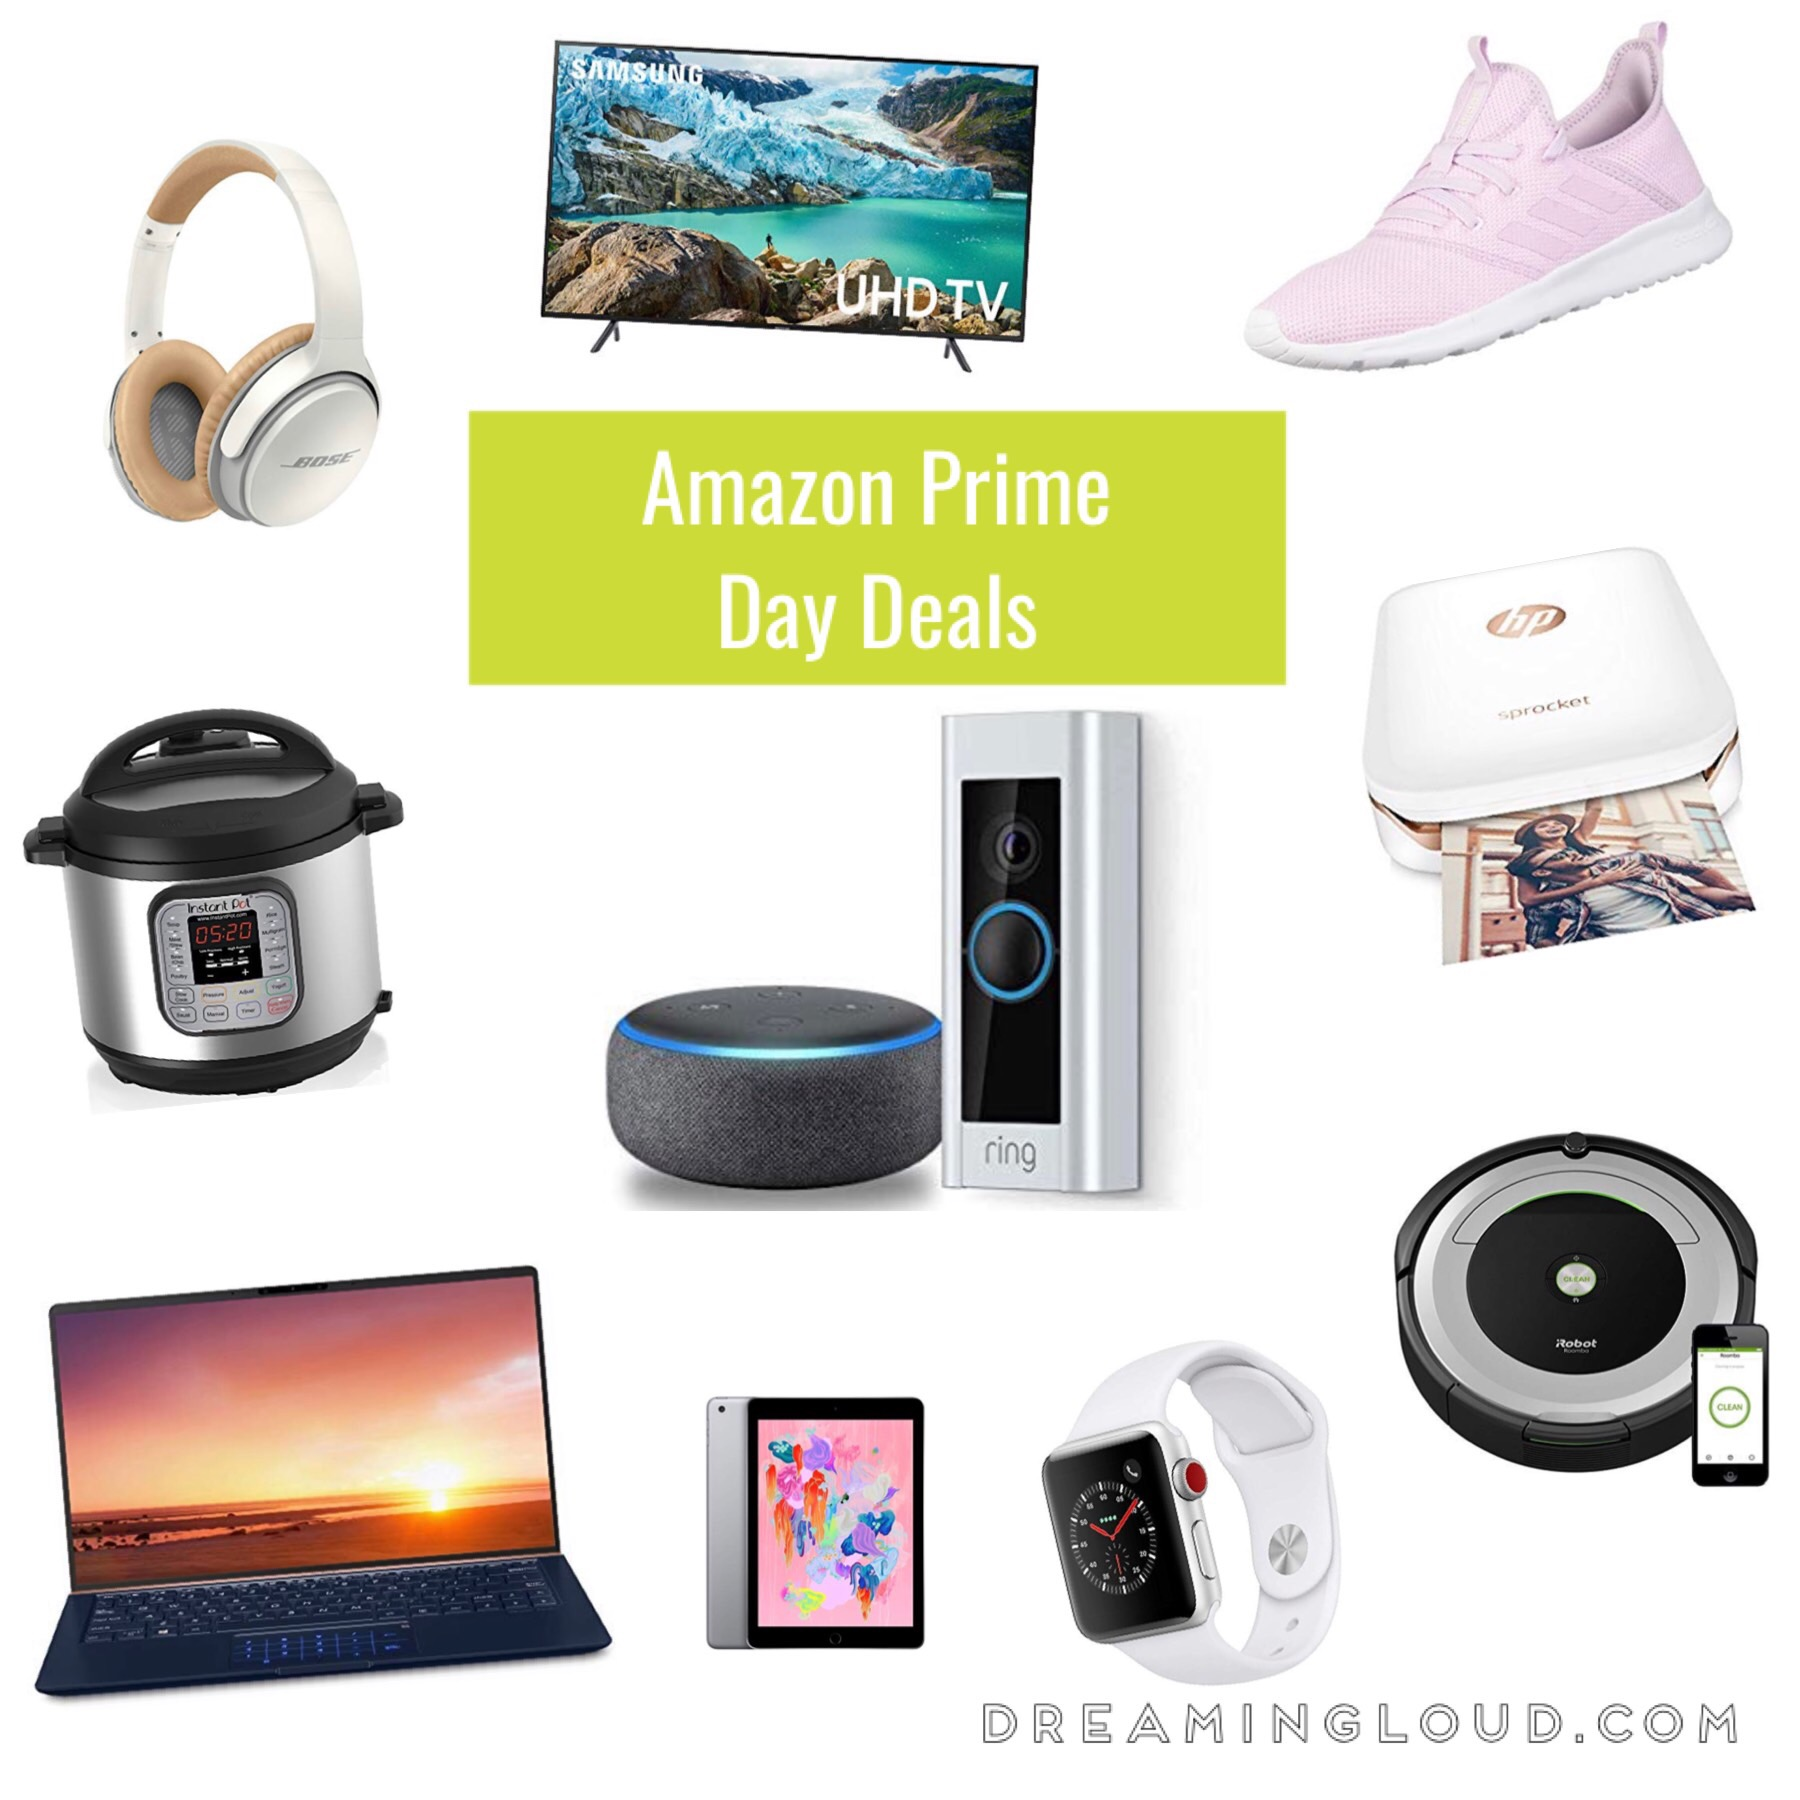 Best Amazon Prime Day Deals 2019 Laptops, Electronic, Home and Fashion Deals by top US life and style blog, Dreaming Loud